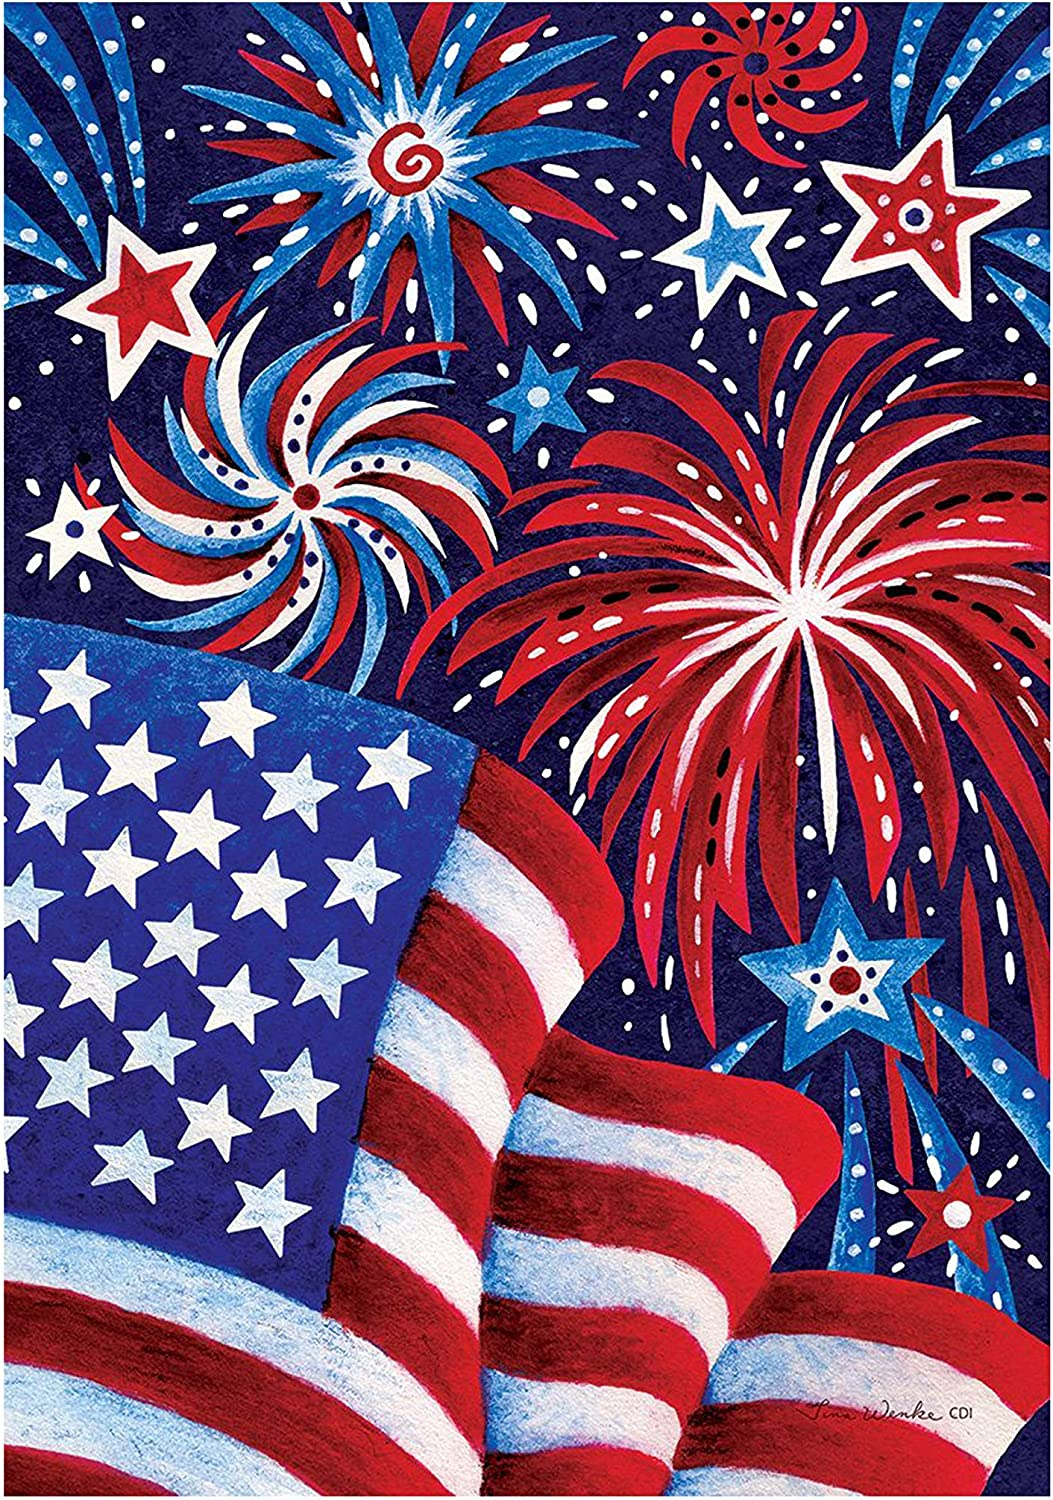 Custom Decor Fireworks and Flag USA - Garden Size, Decorative Double Sided, Licensed and Copyrighted Flag - Printed in The USA Inc. - 12 Inch X 18 Inch Approx. Size